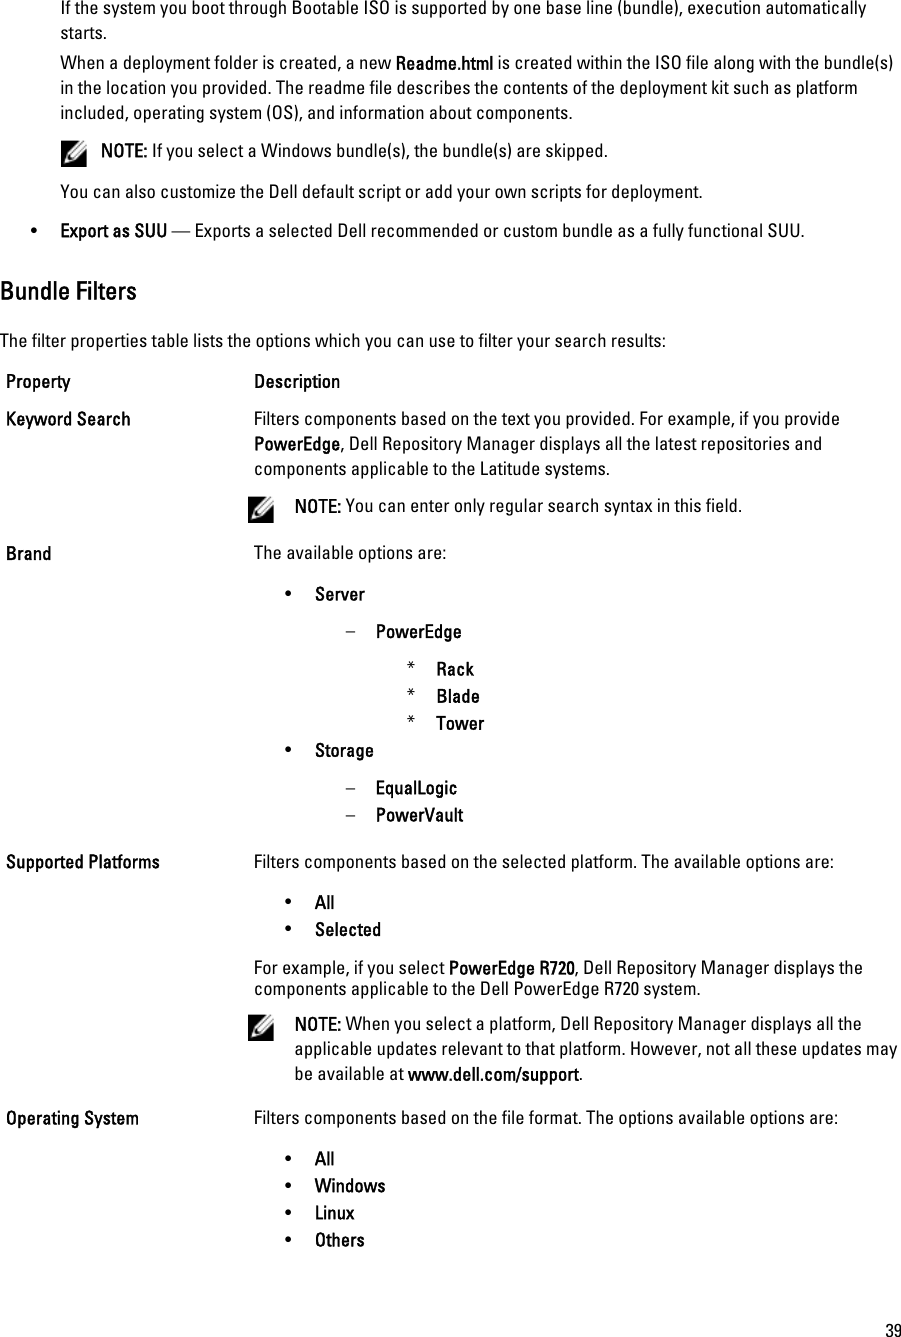 Dell Repository Manager Version 1 6 Users Manual 1 6 User's Guide